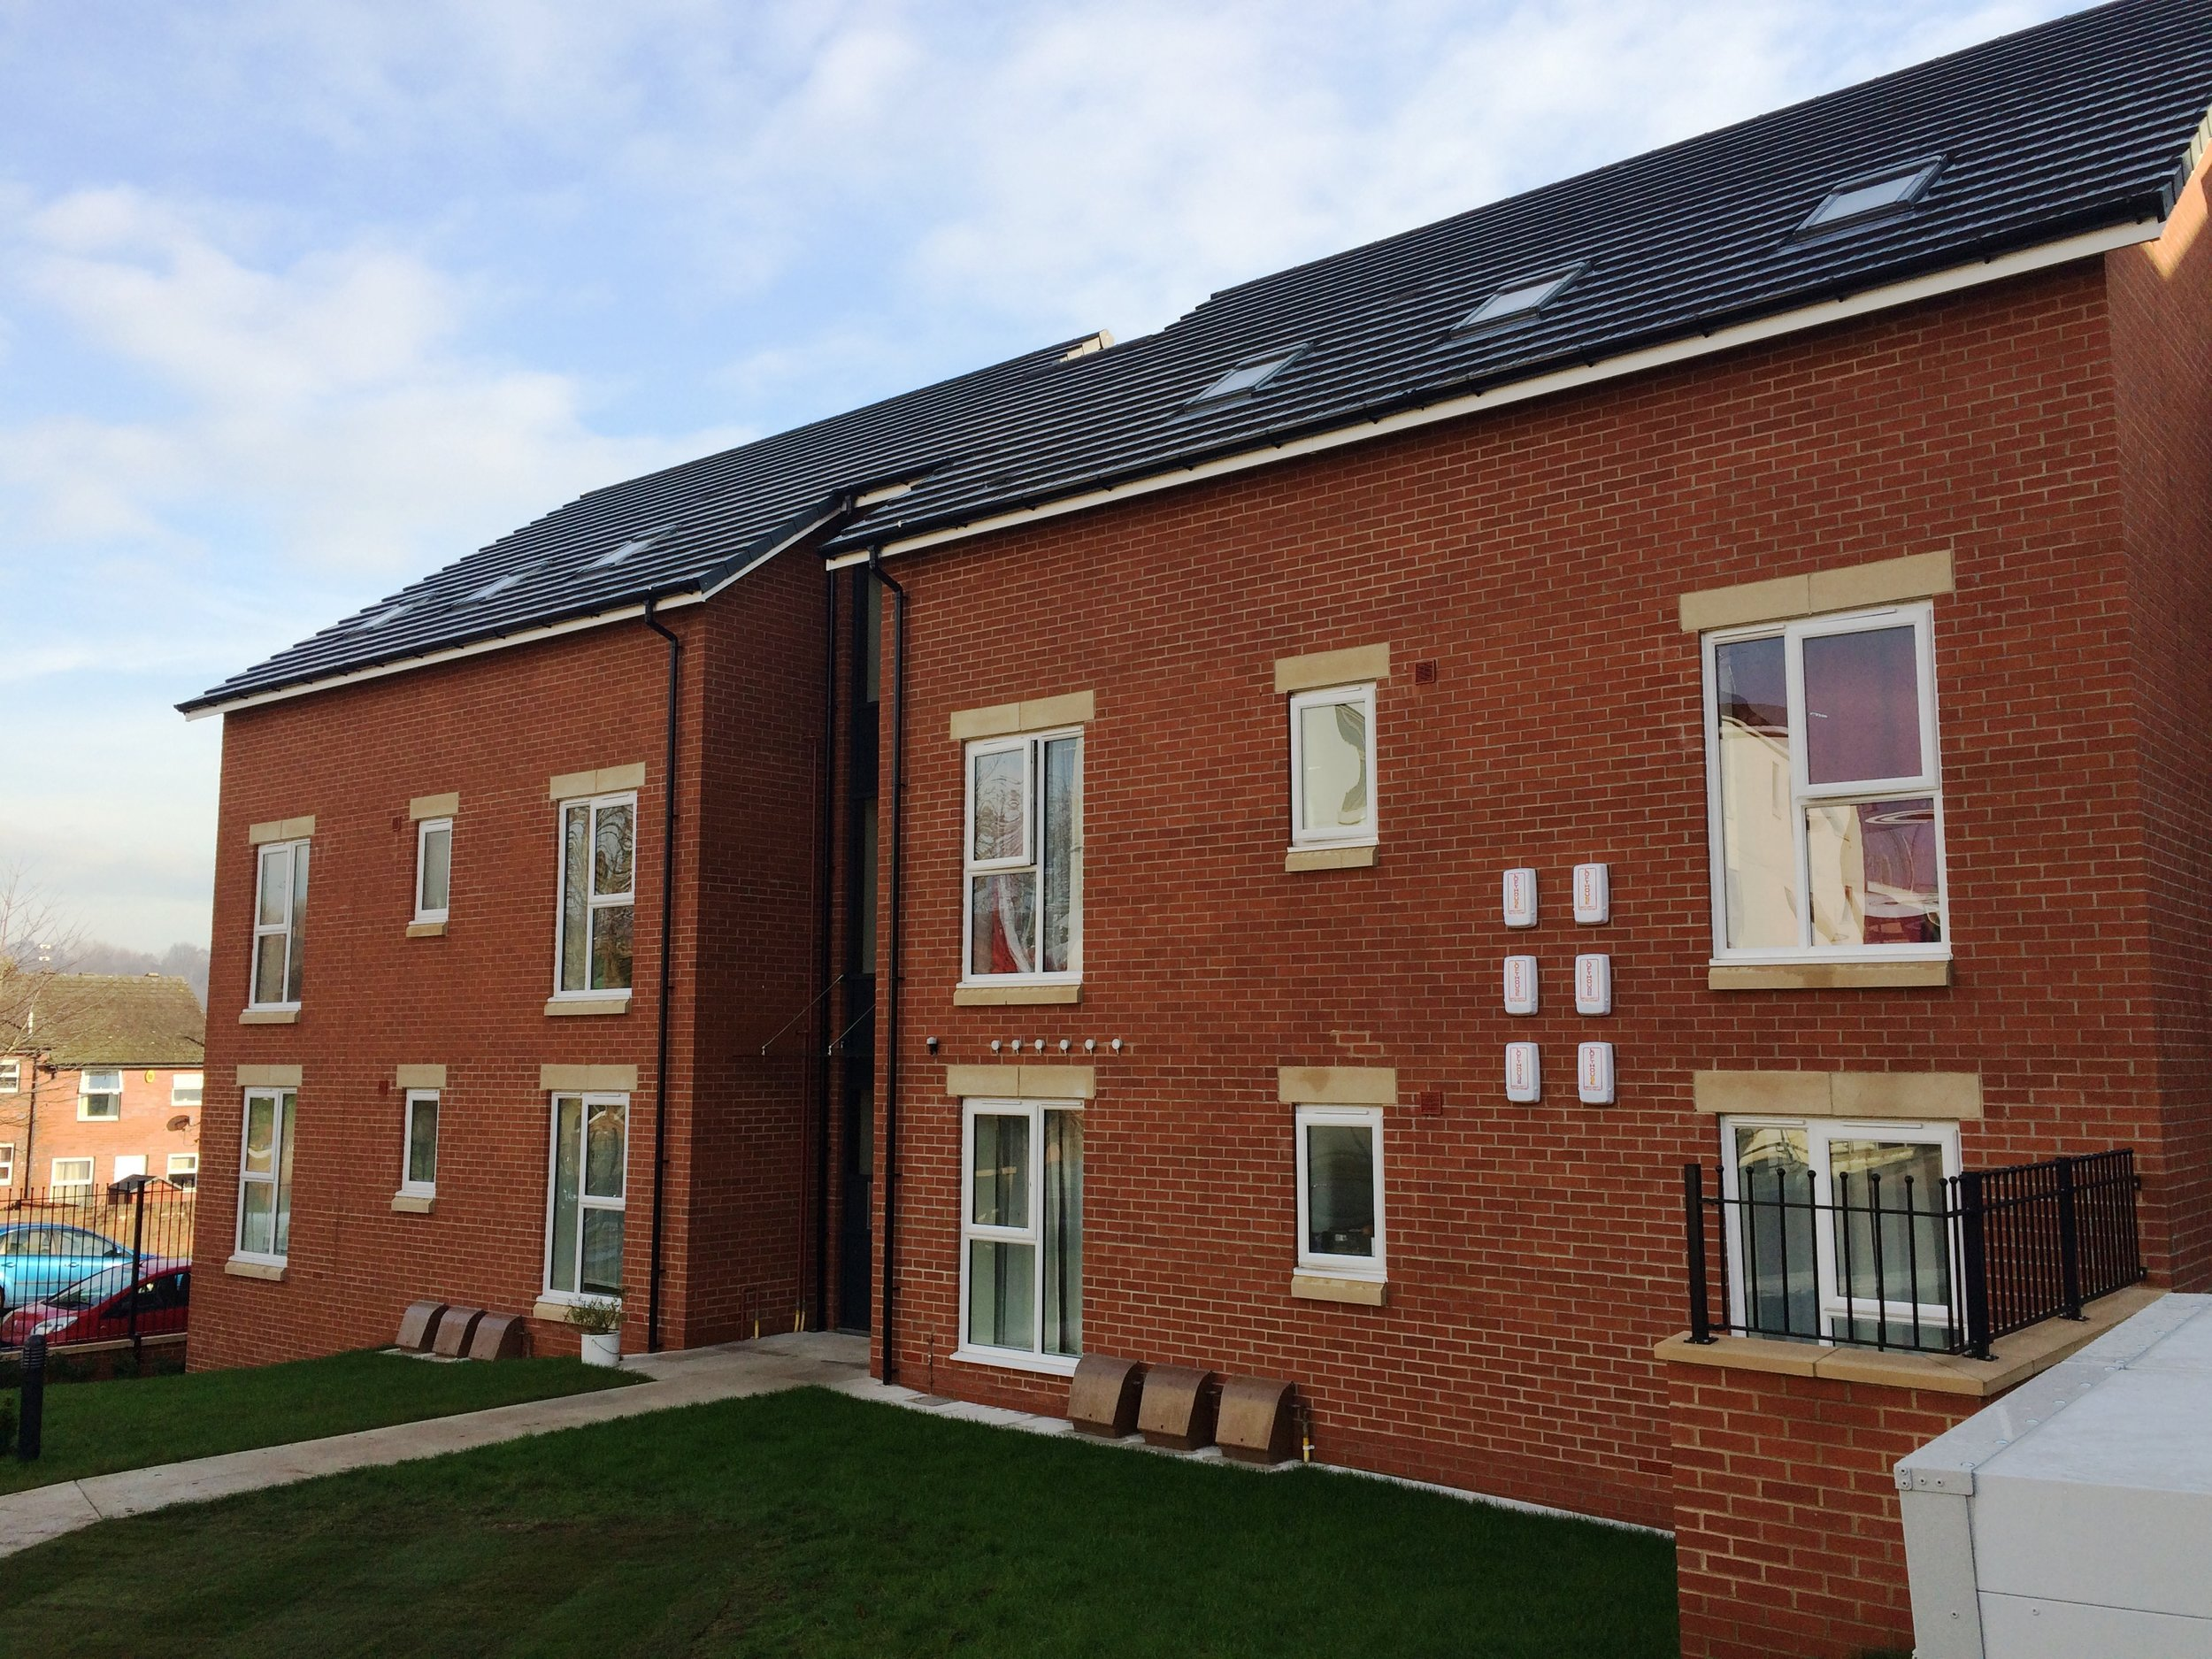 Part of Unity's new Holborn Court development in Little London, north Leeds